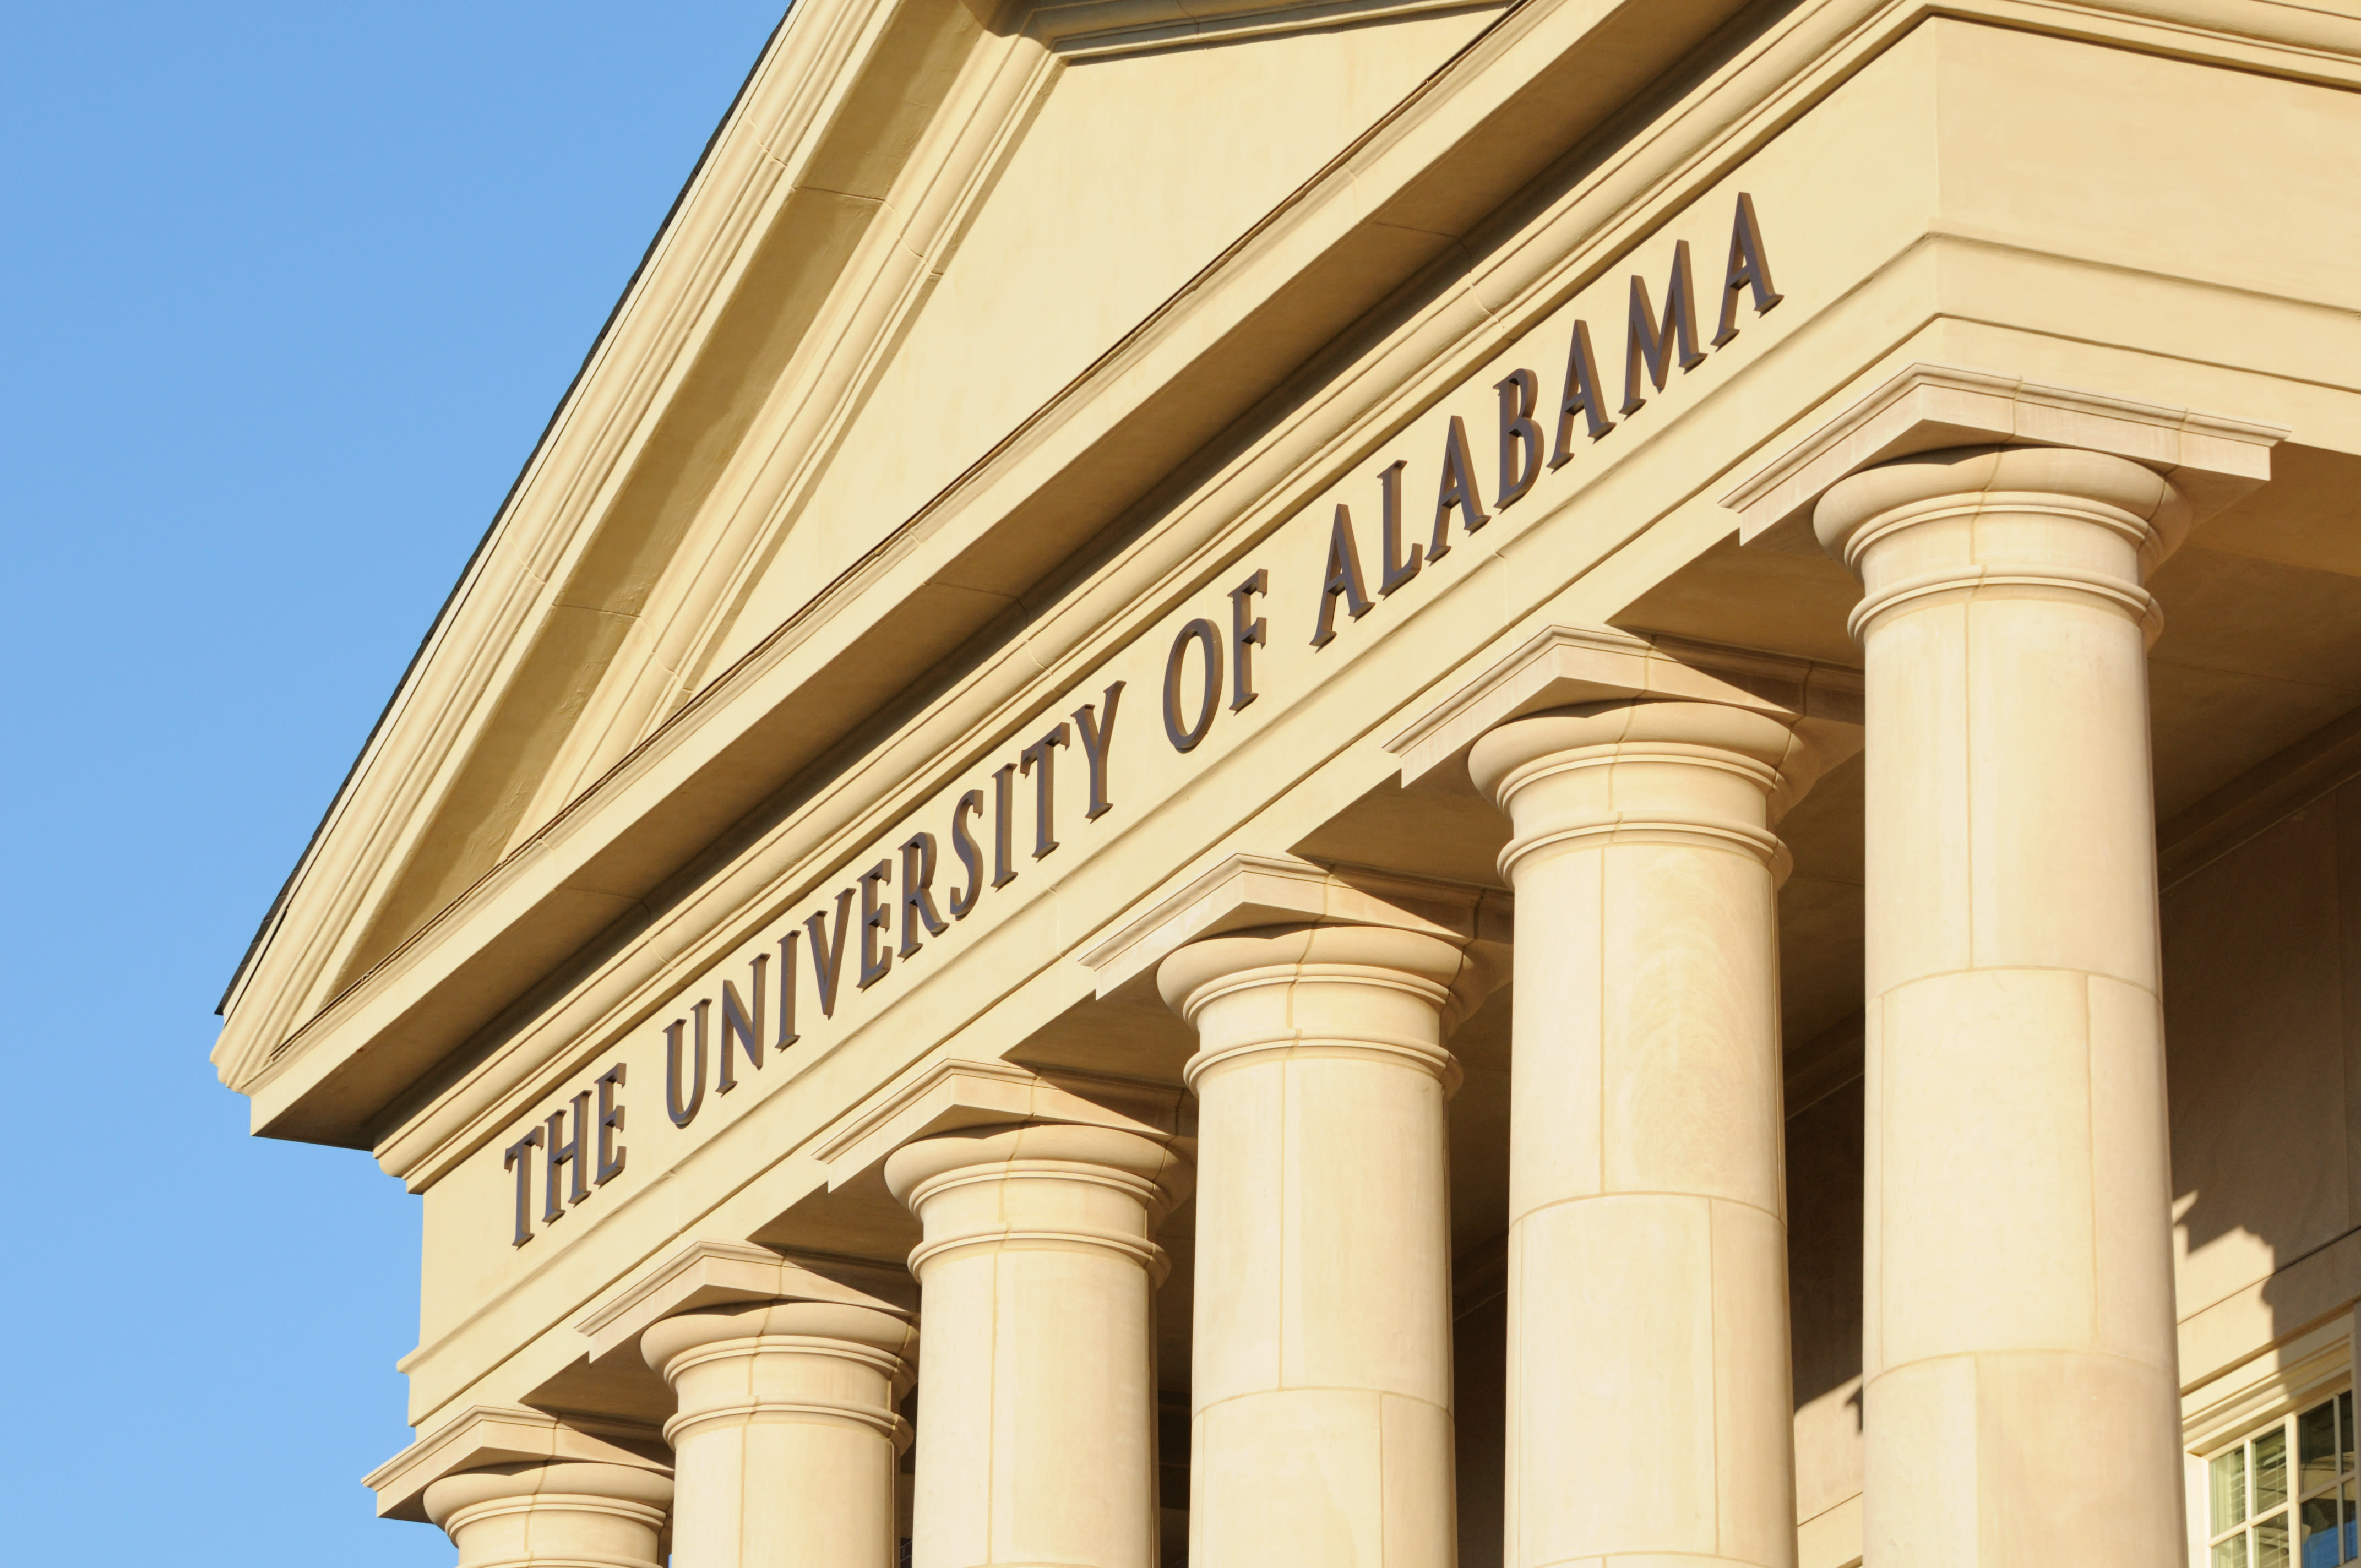 'I Feel Horrible.' Former University of Alabama Student Apologies After Using Racial Slur in Video